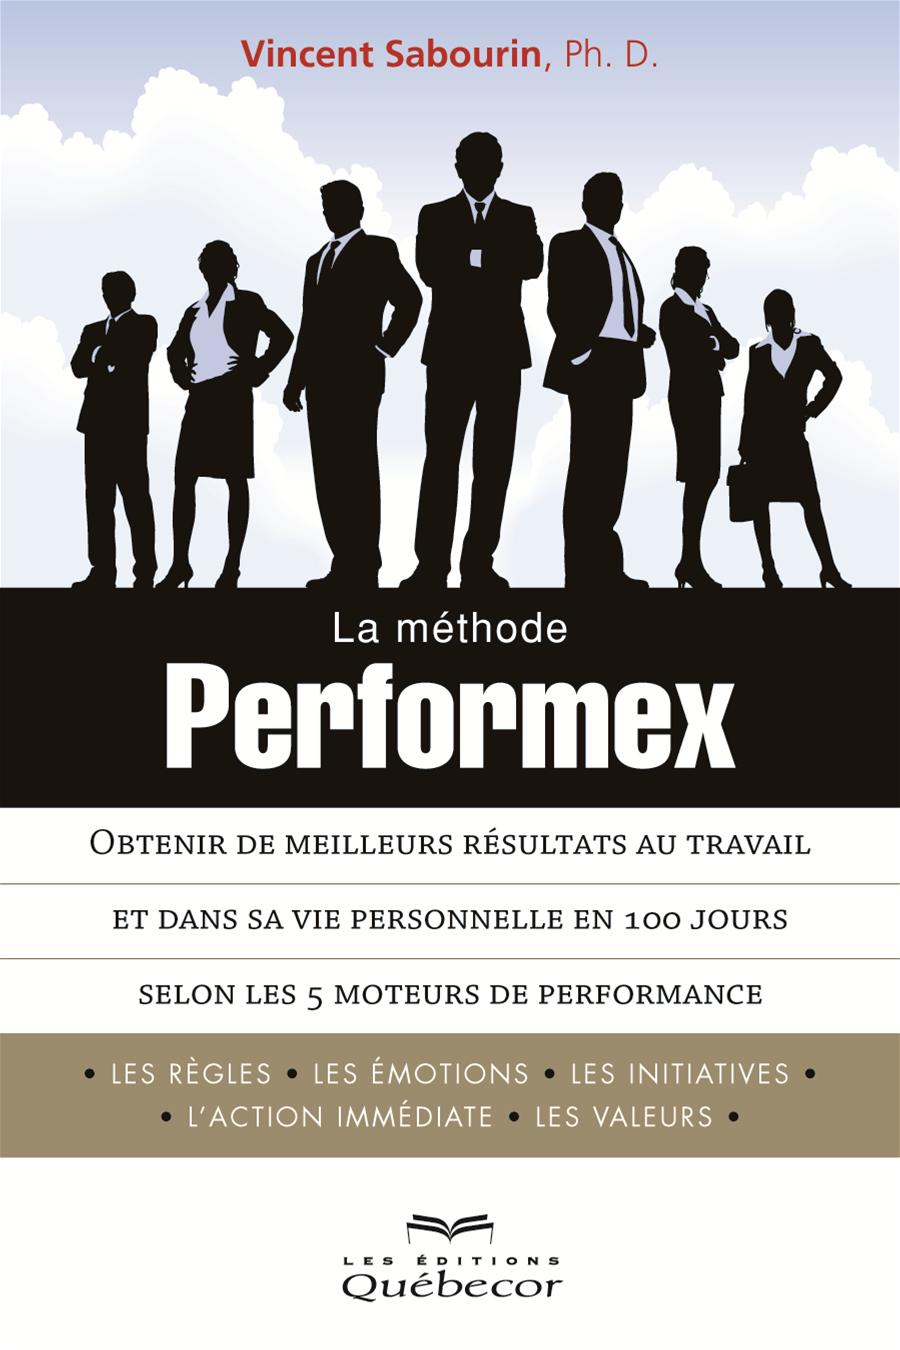 La méthode performex